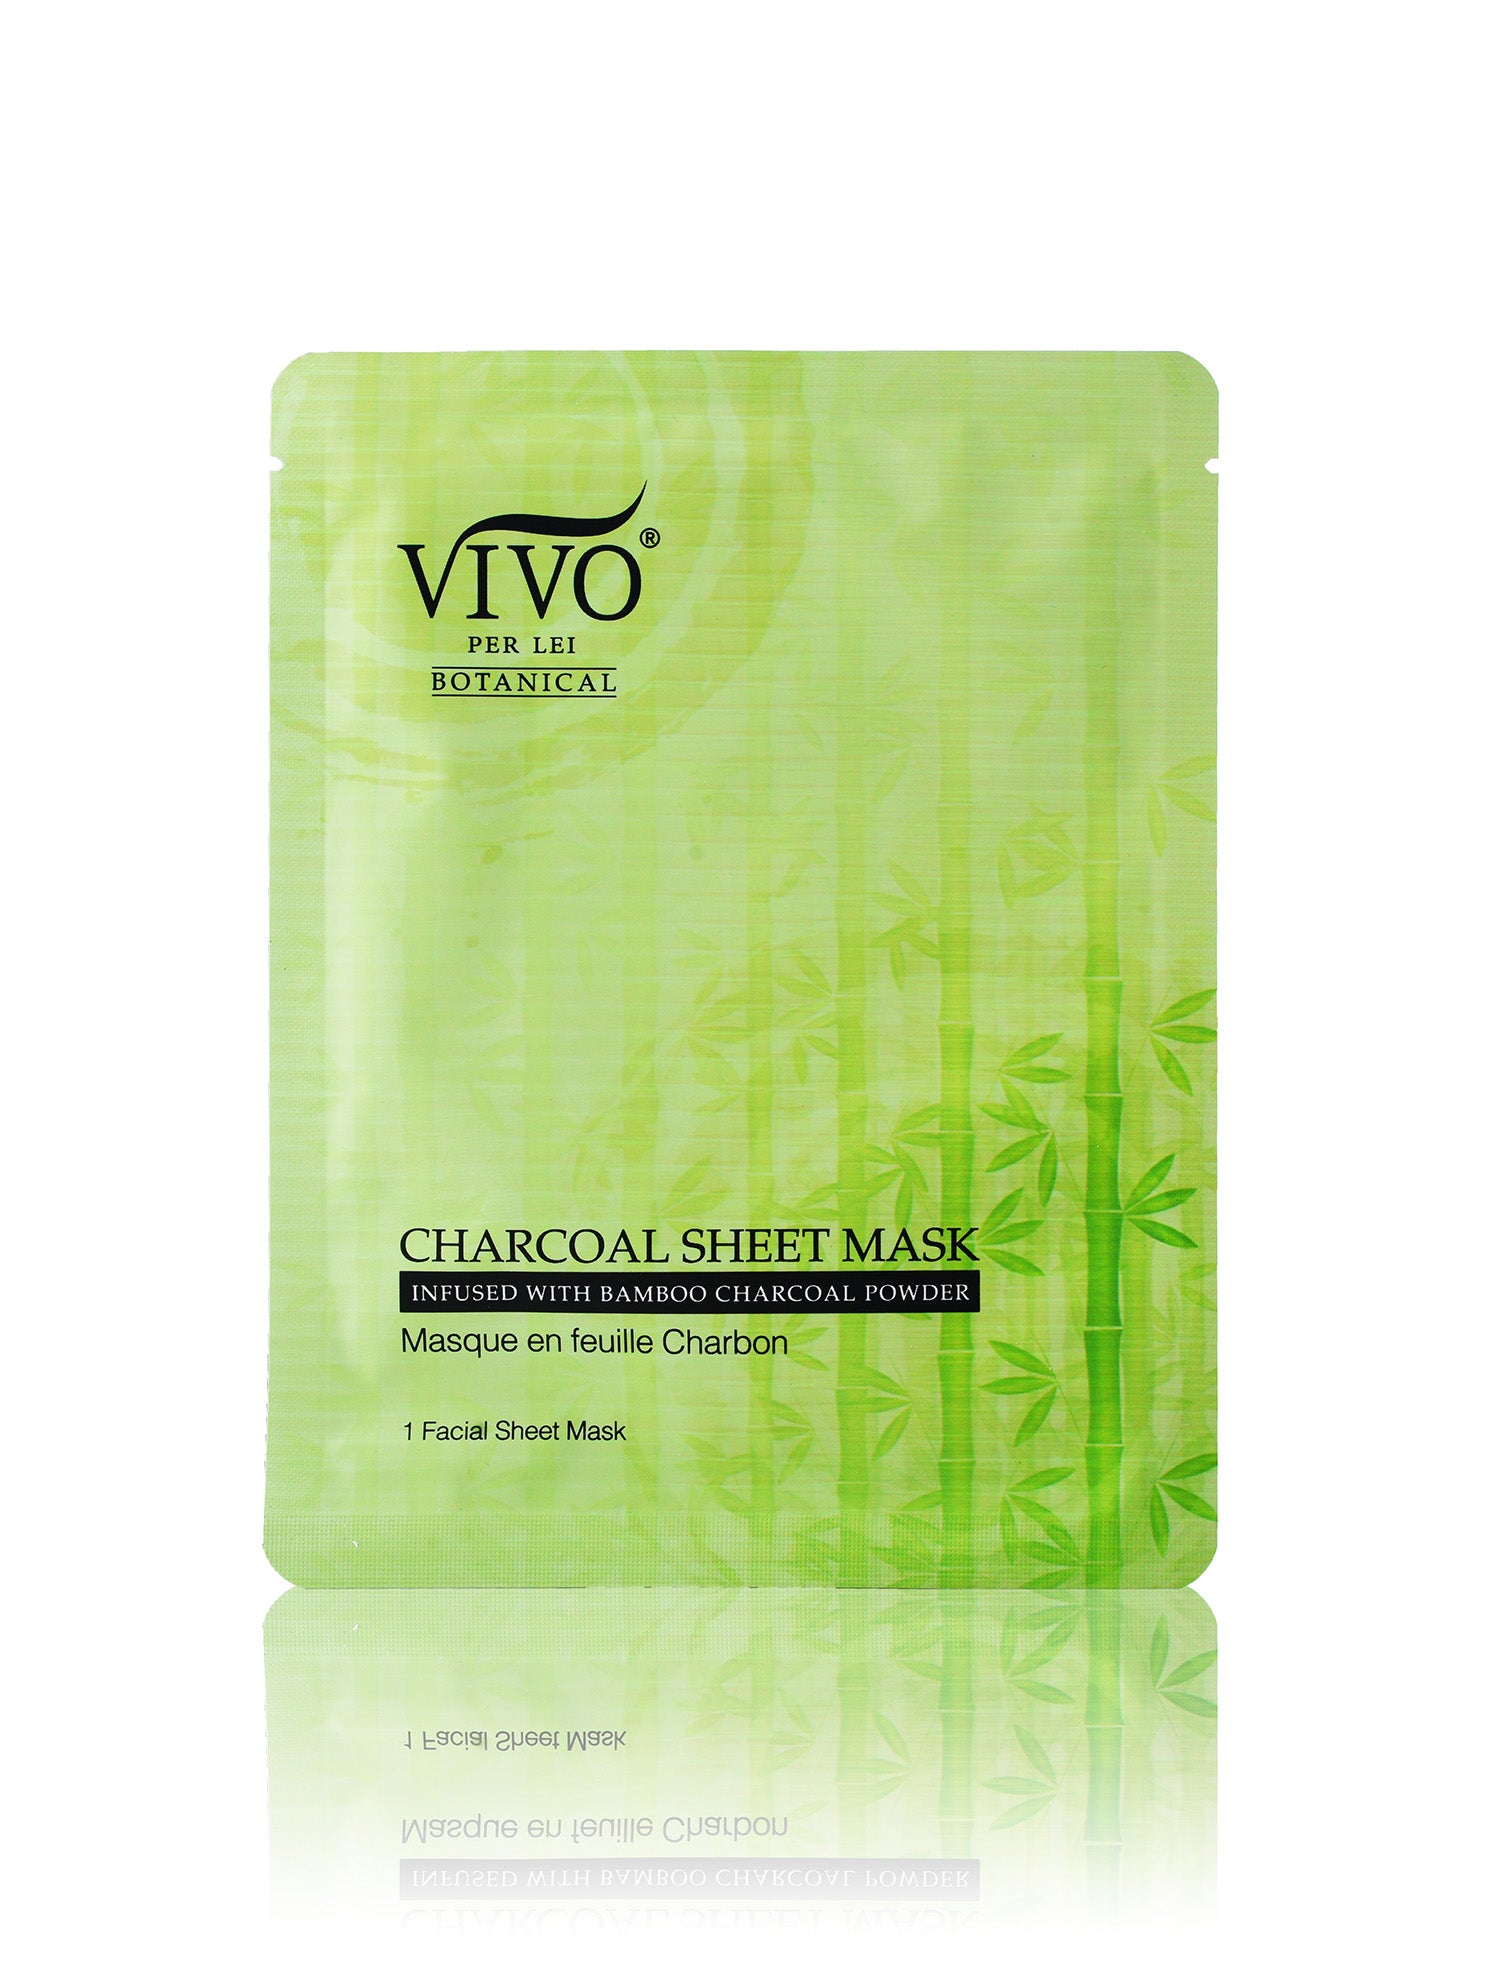 Vivo Per Lei Charcoal Sheet Mask